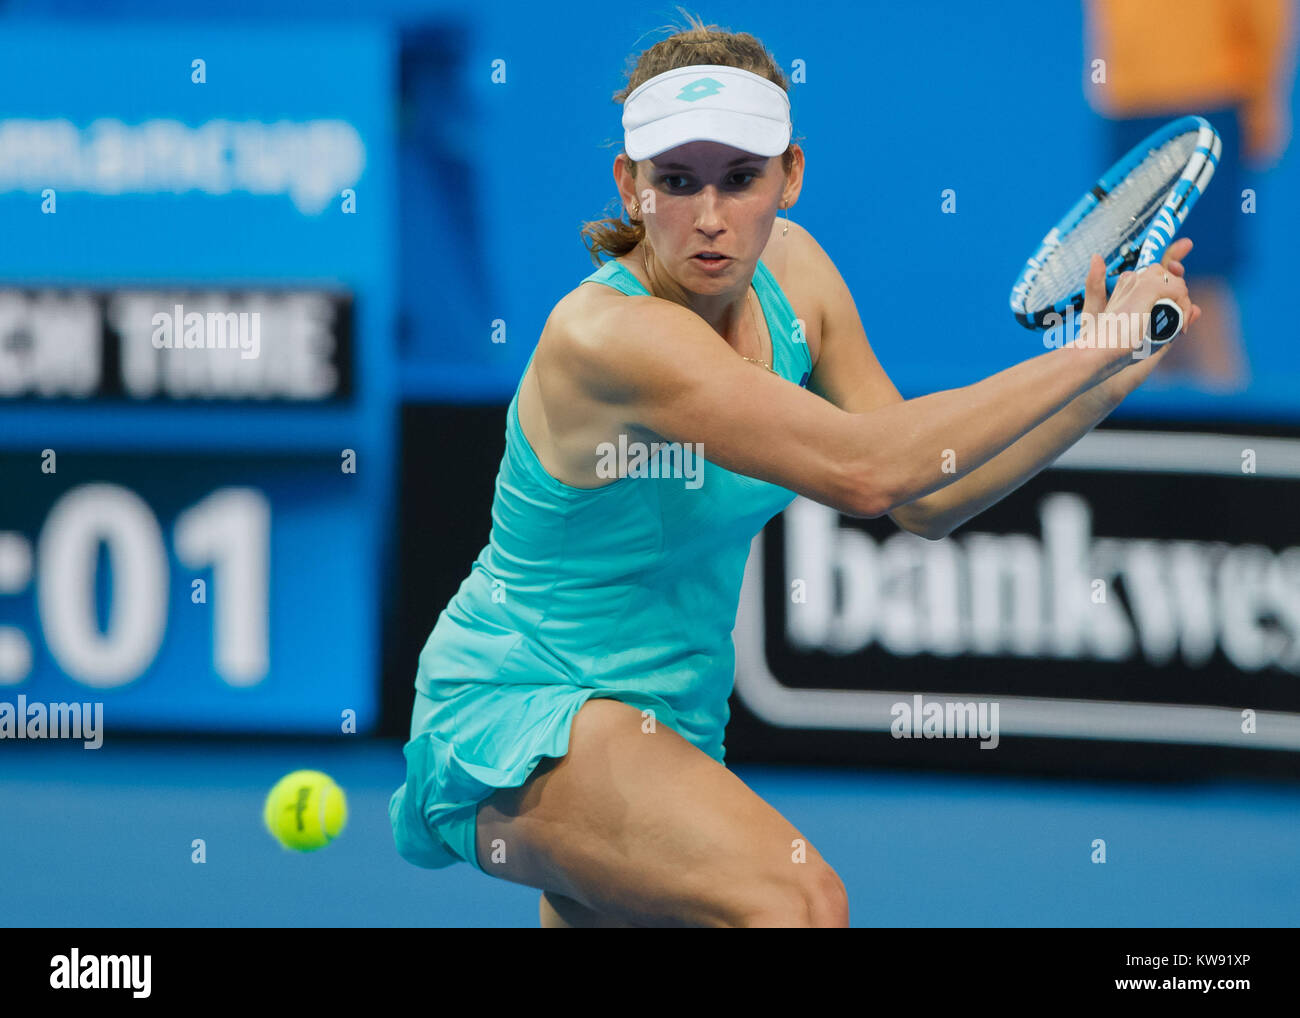 ELISE MERTENS (BEL) playing at the Hopman Cup 2018 in the Perth Arena - Perth, Australia. - Stock Image